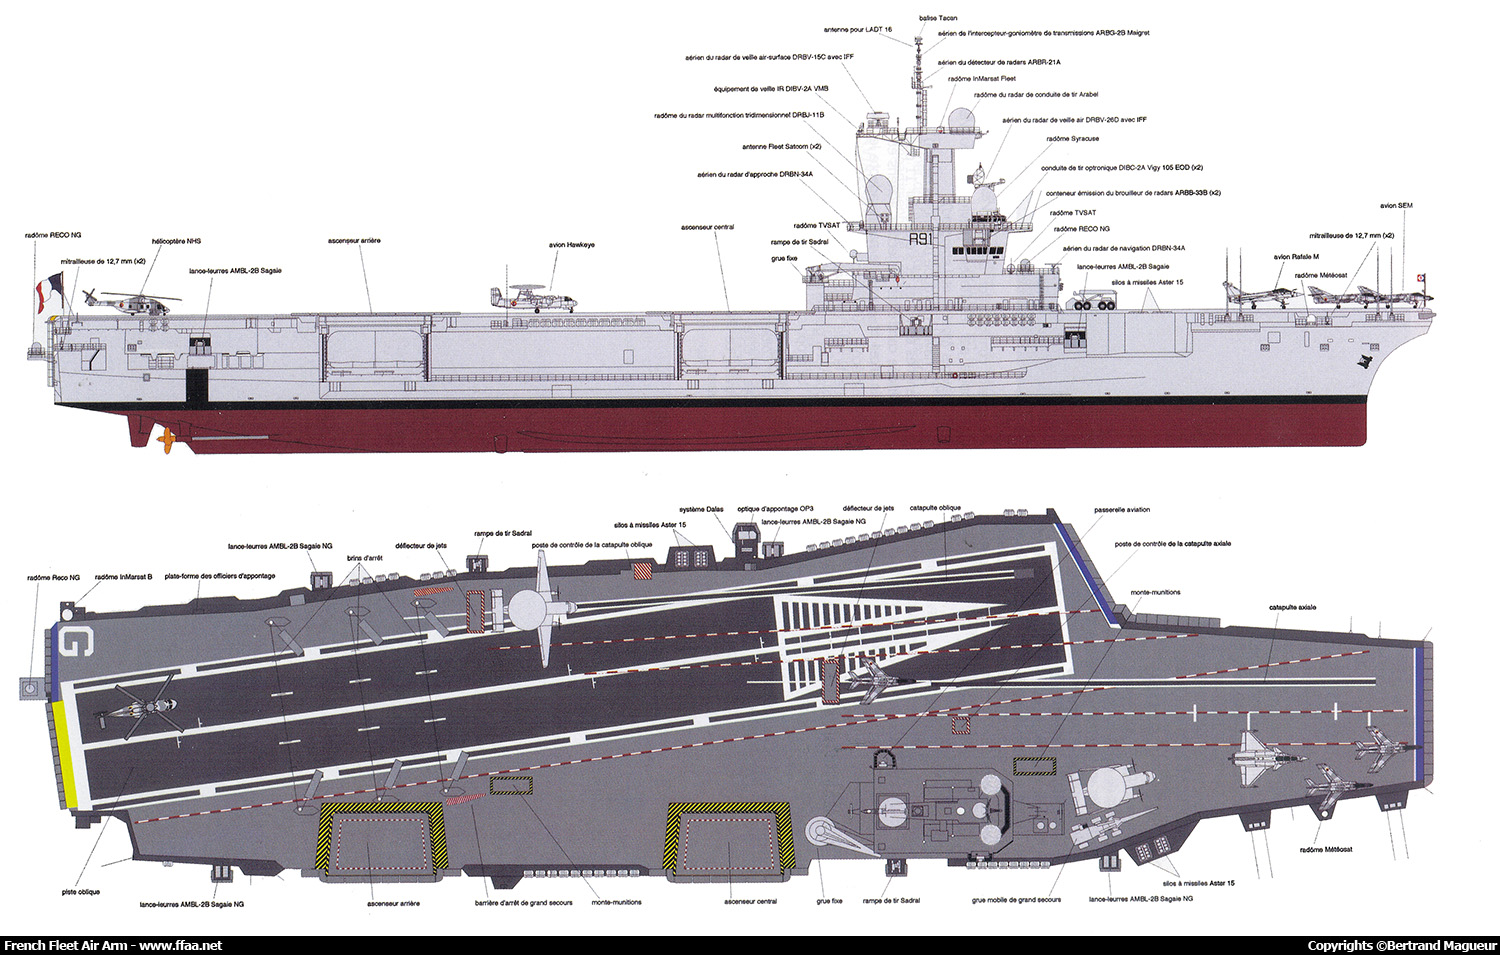 Le Meilleur Top 5 Warships Of The World » Technology Vista Ce Mois Ci